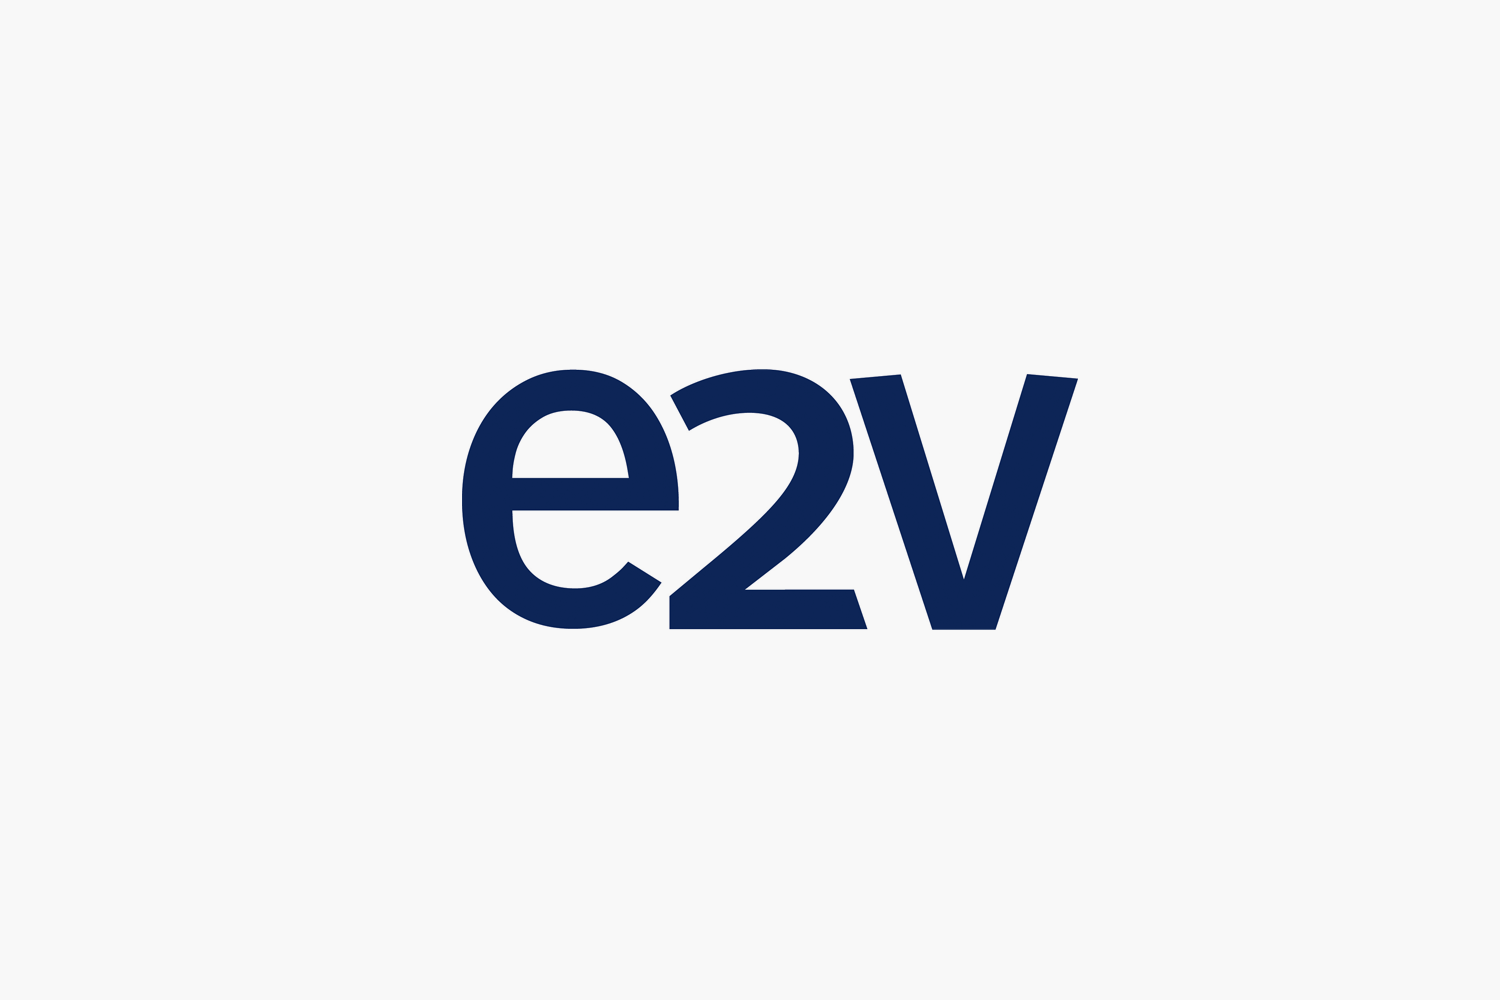 e2v - e2v are a British high tech company with a global presence providing leading edge imaging, sensor and communications technologies. We developed and led a 'Future-Shaping' workshop' for their top team. From this several priority areas were identified, and for each a set of short-term actions, medium-term projects and long-term initiatives.View project